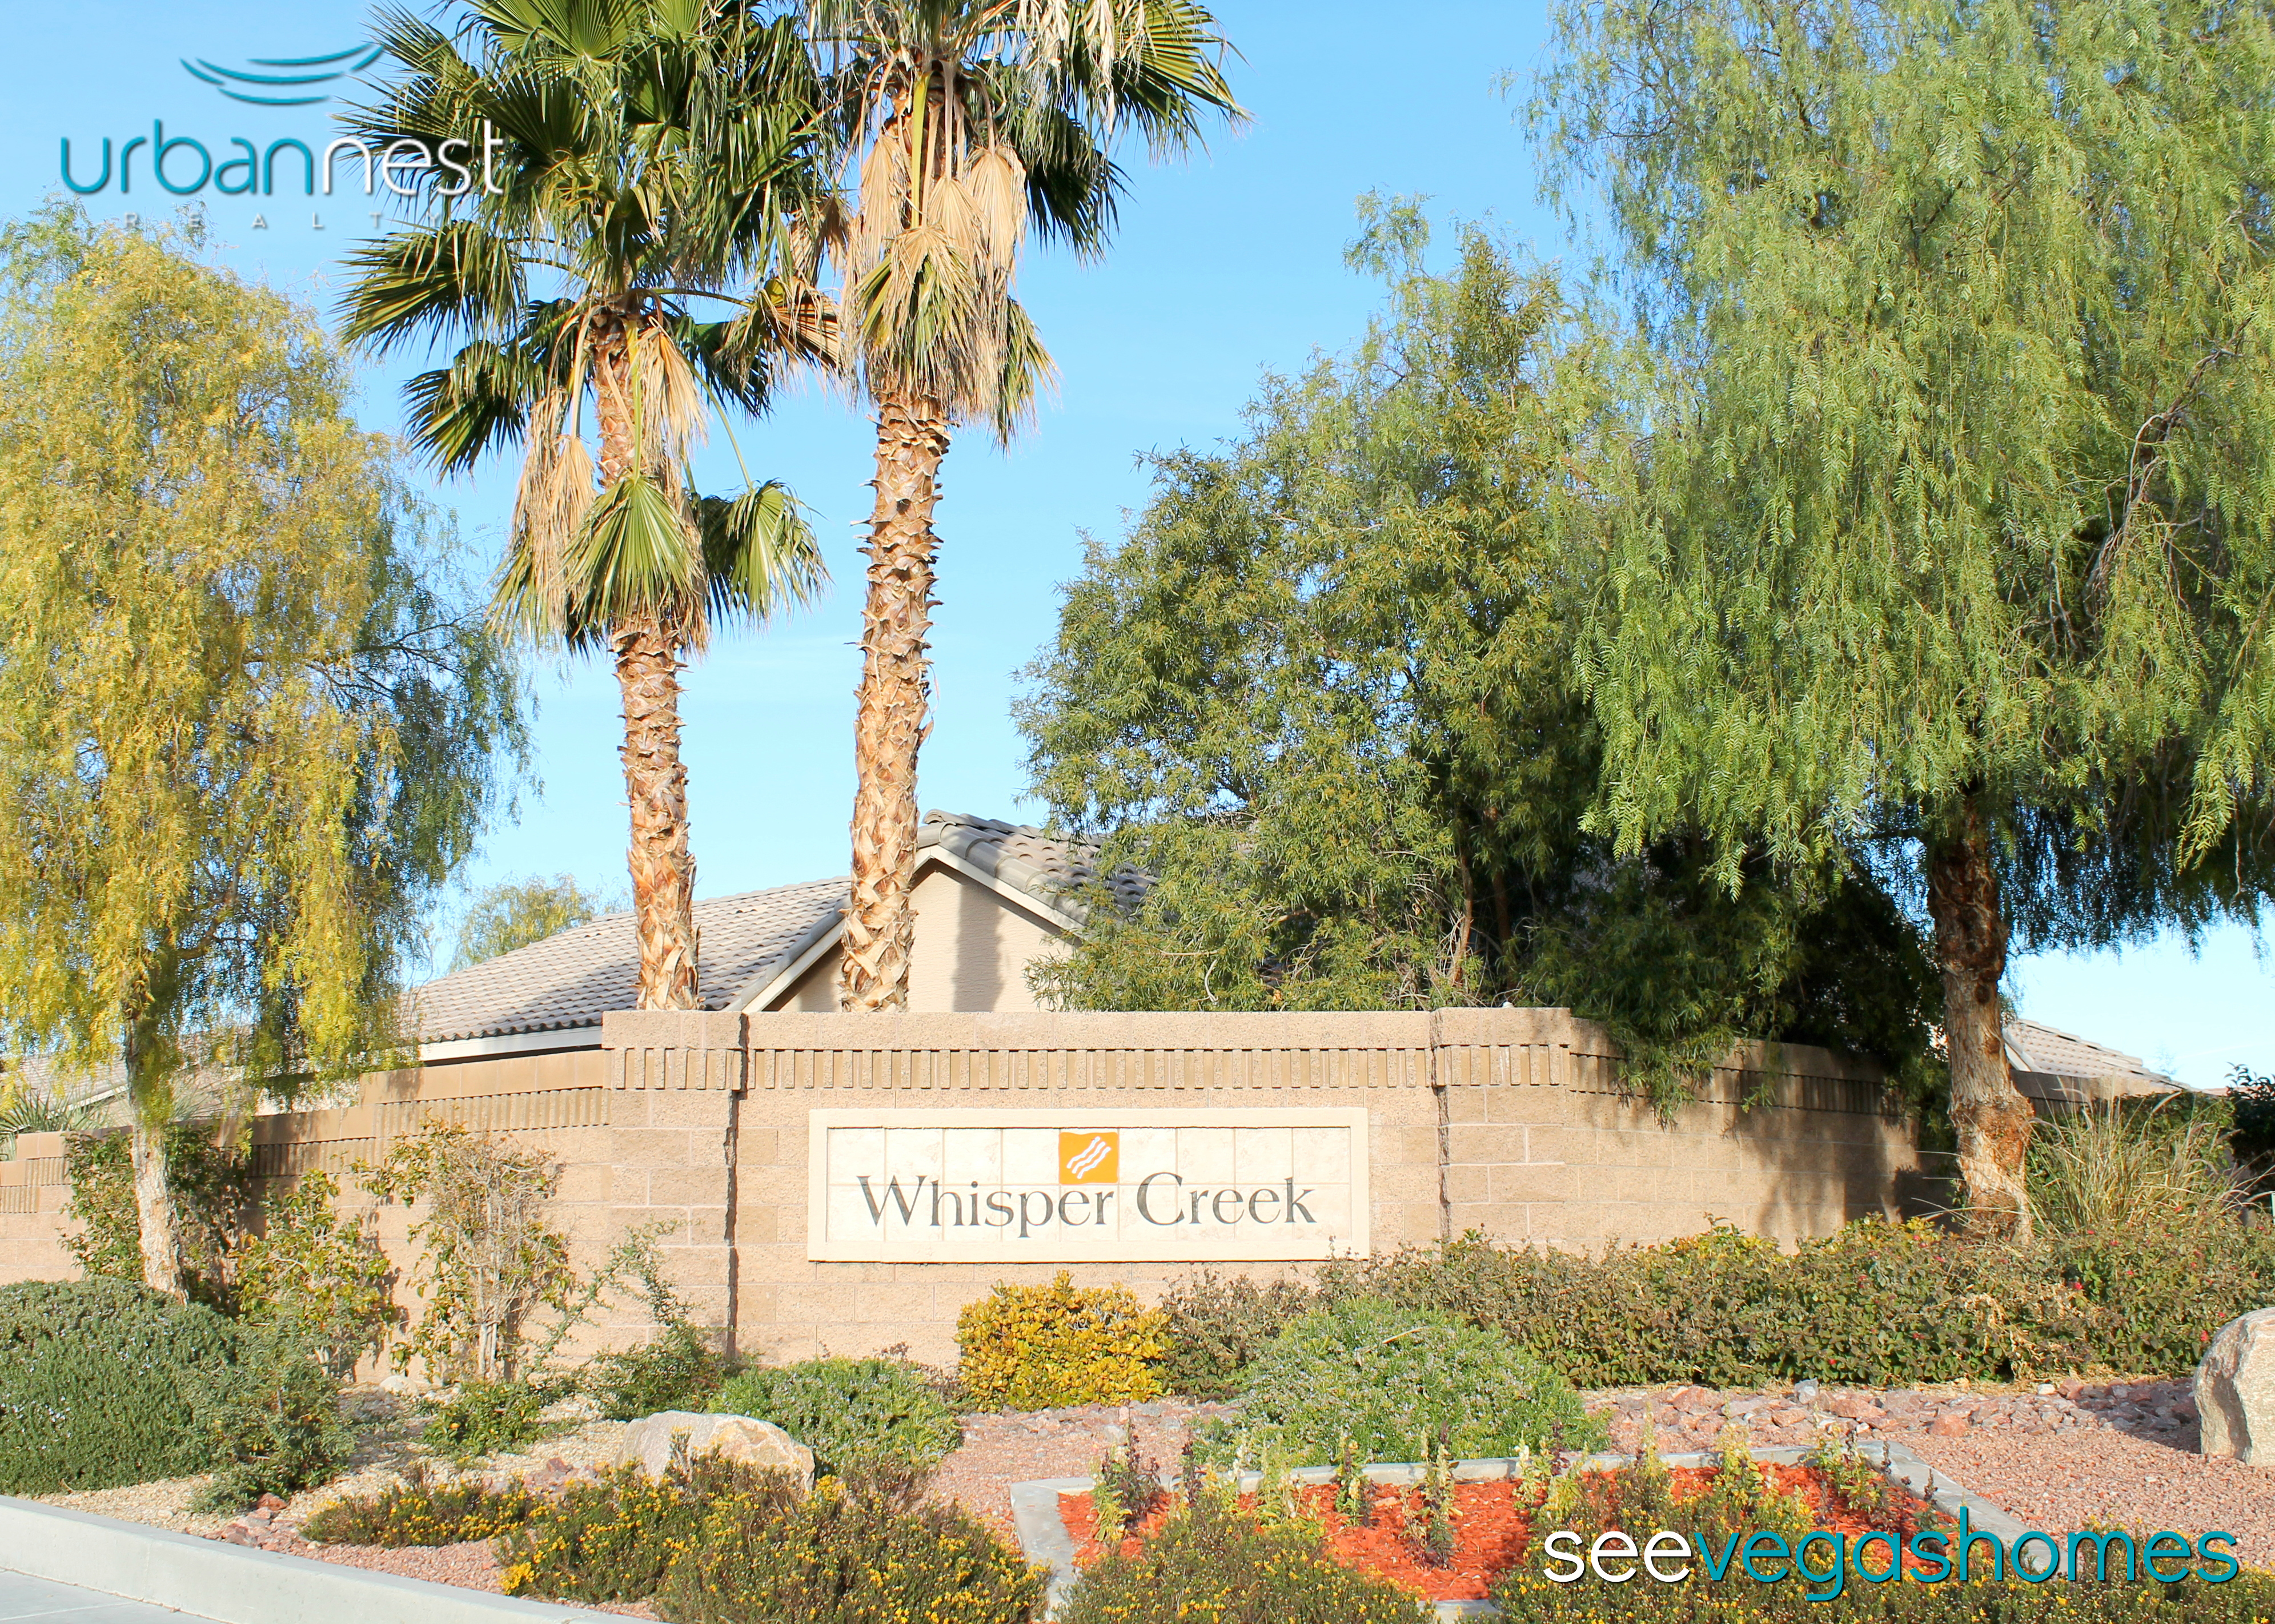 Whisper Creek Tule Springs North Las Vegas NV 89131 SeeVegasHomes